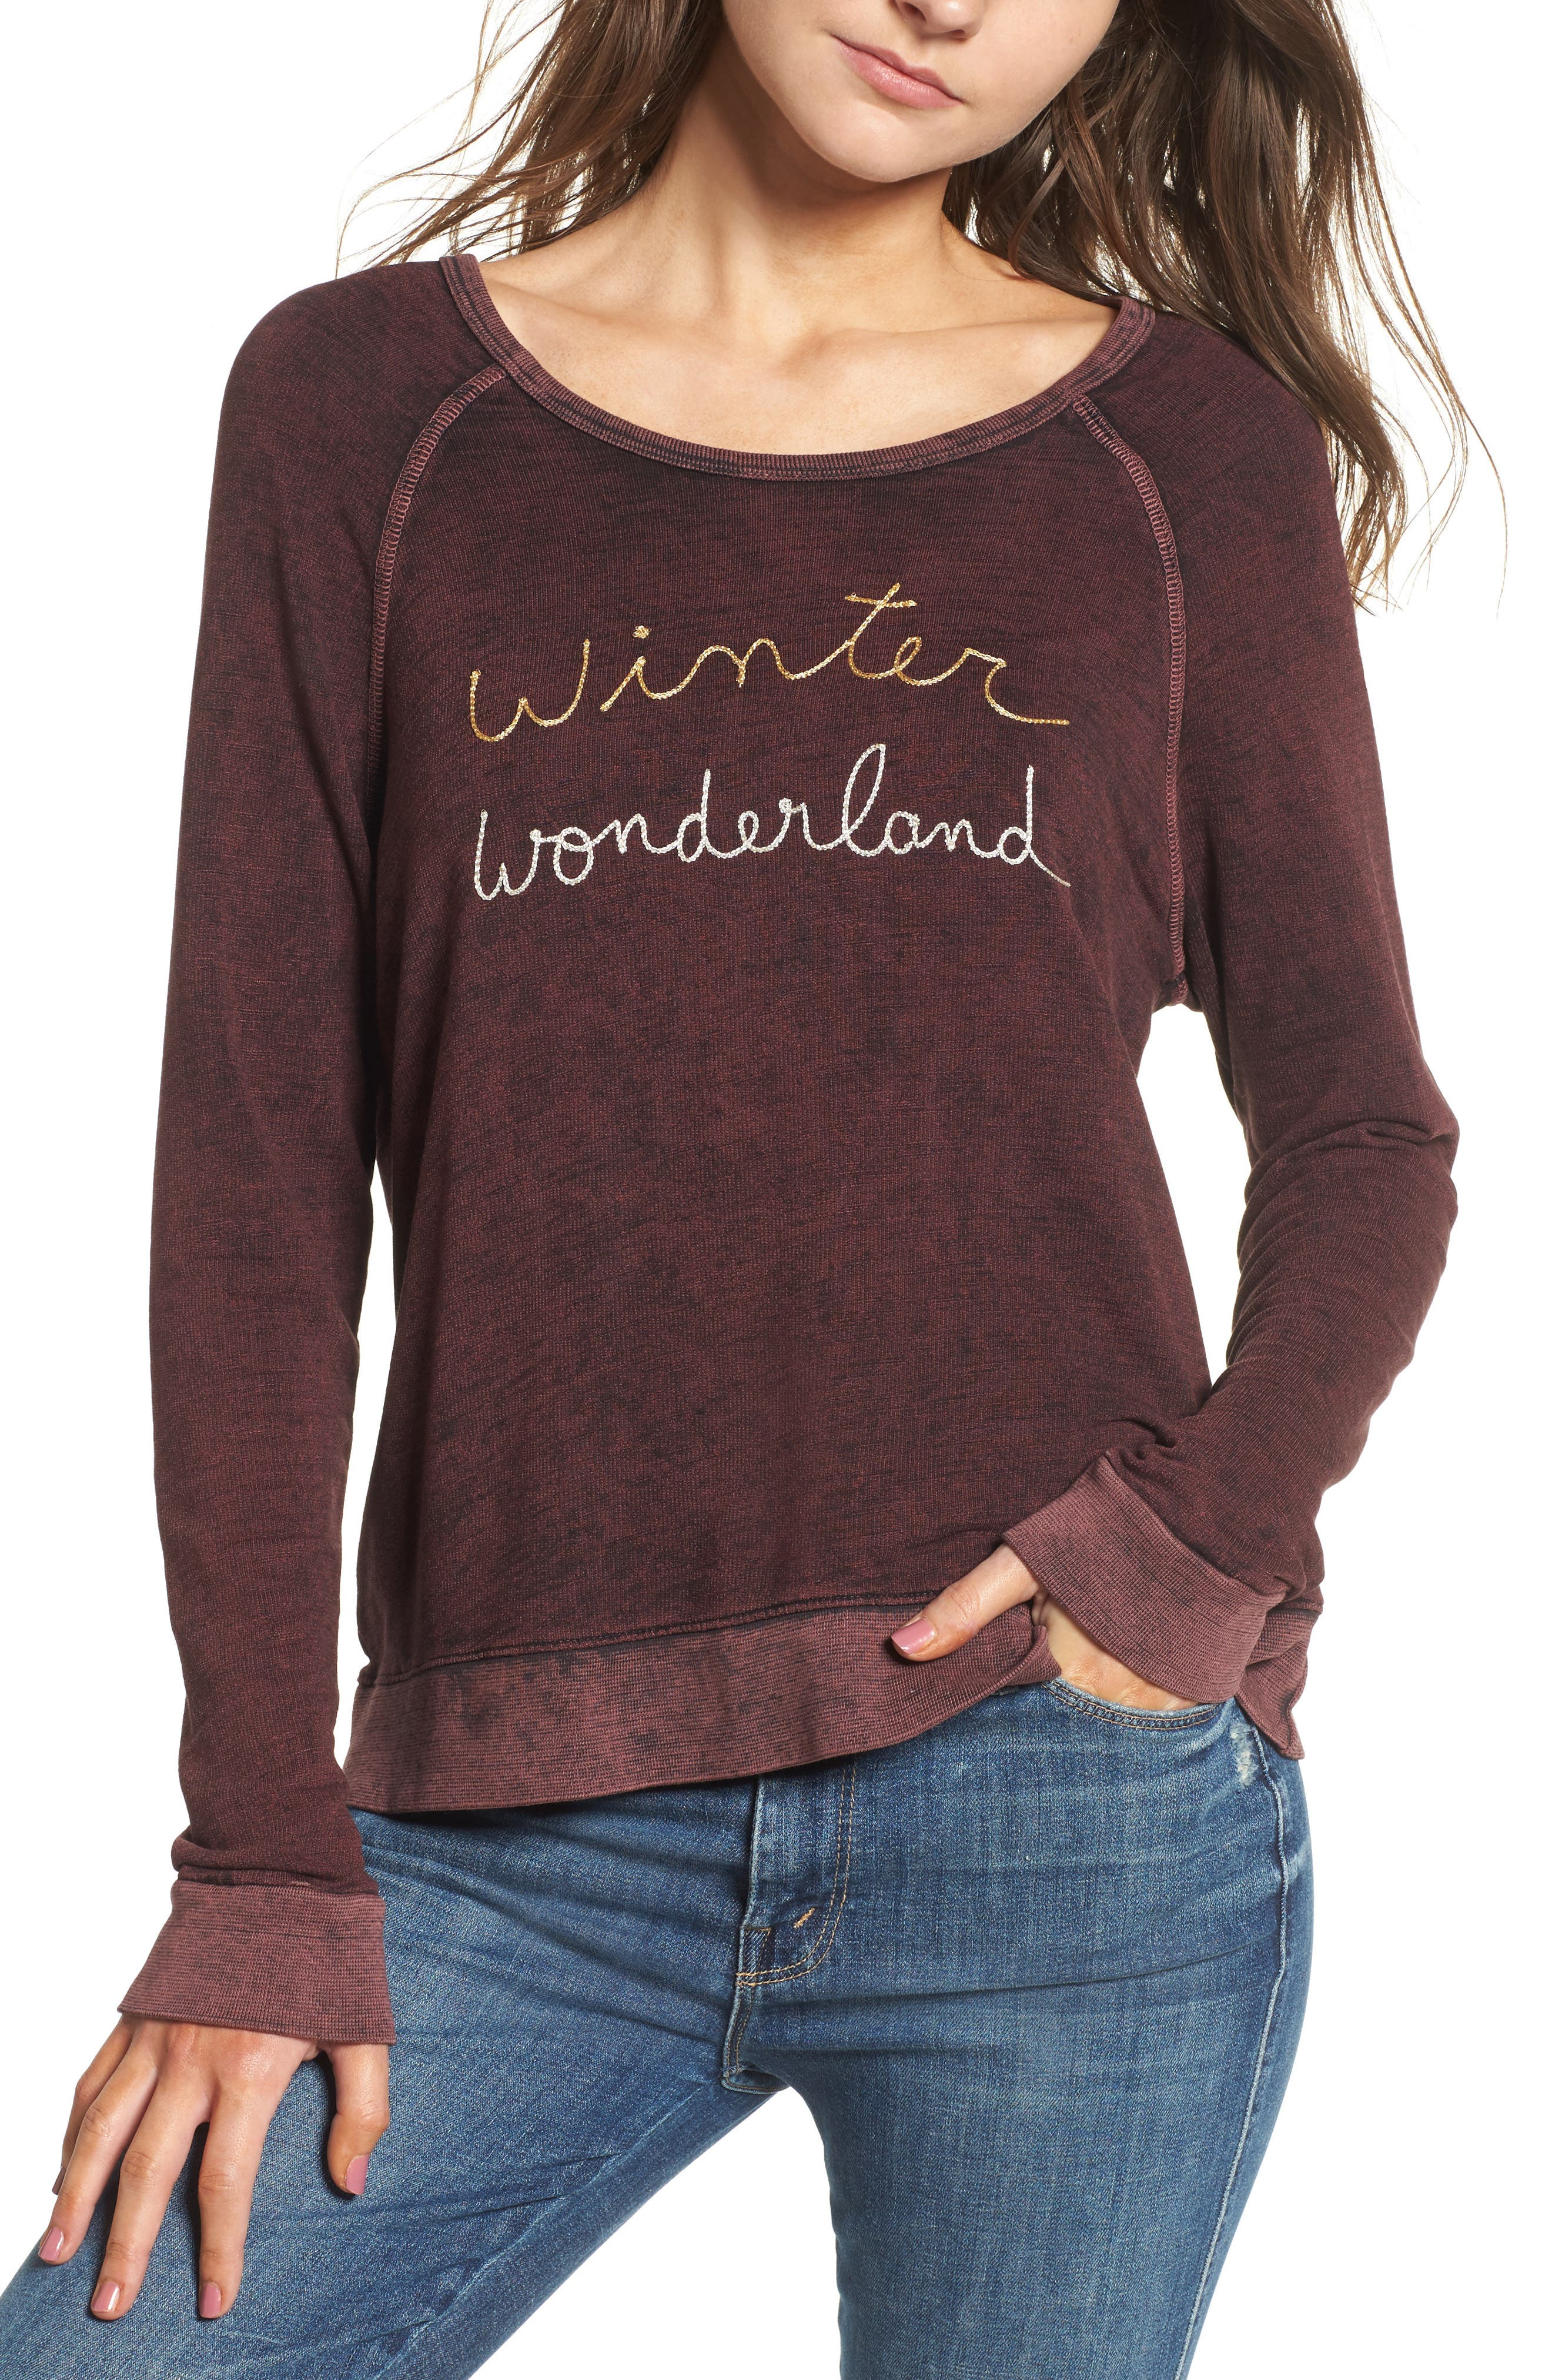 Active Winter Wonderland Sweatshirt,                             Main thumbnail 1, color,                             931